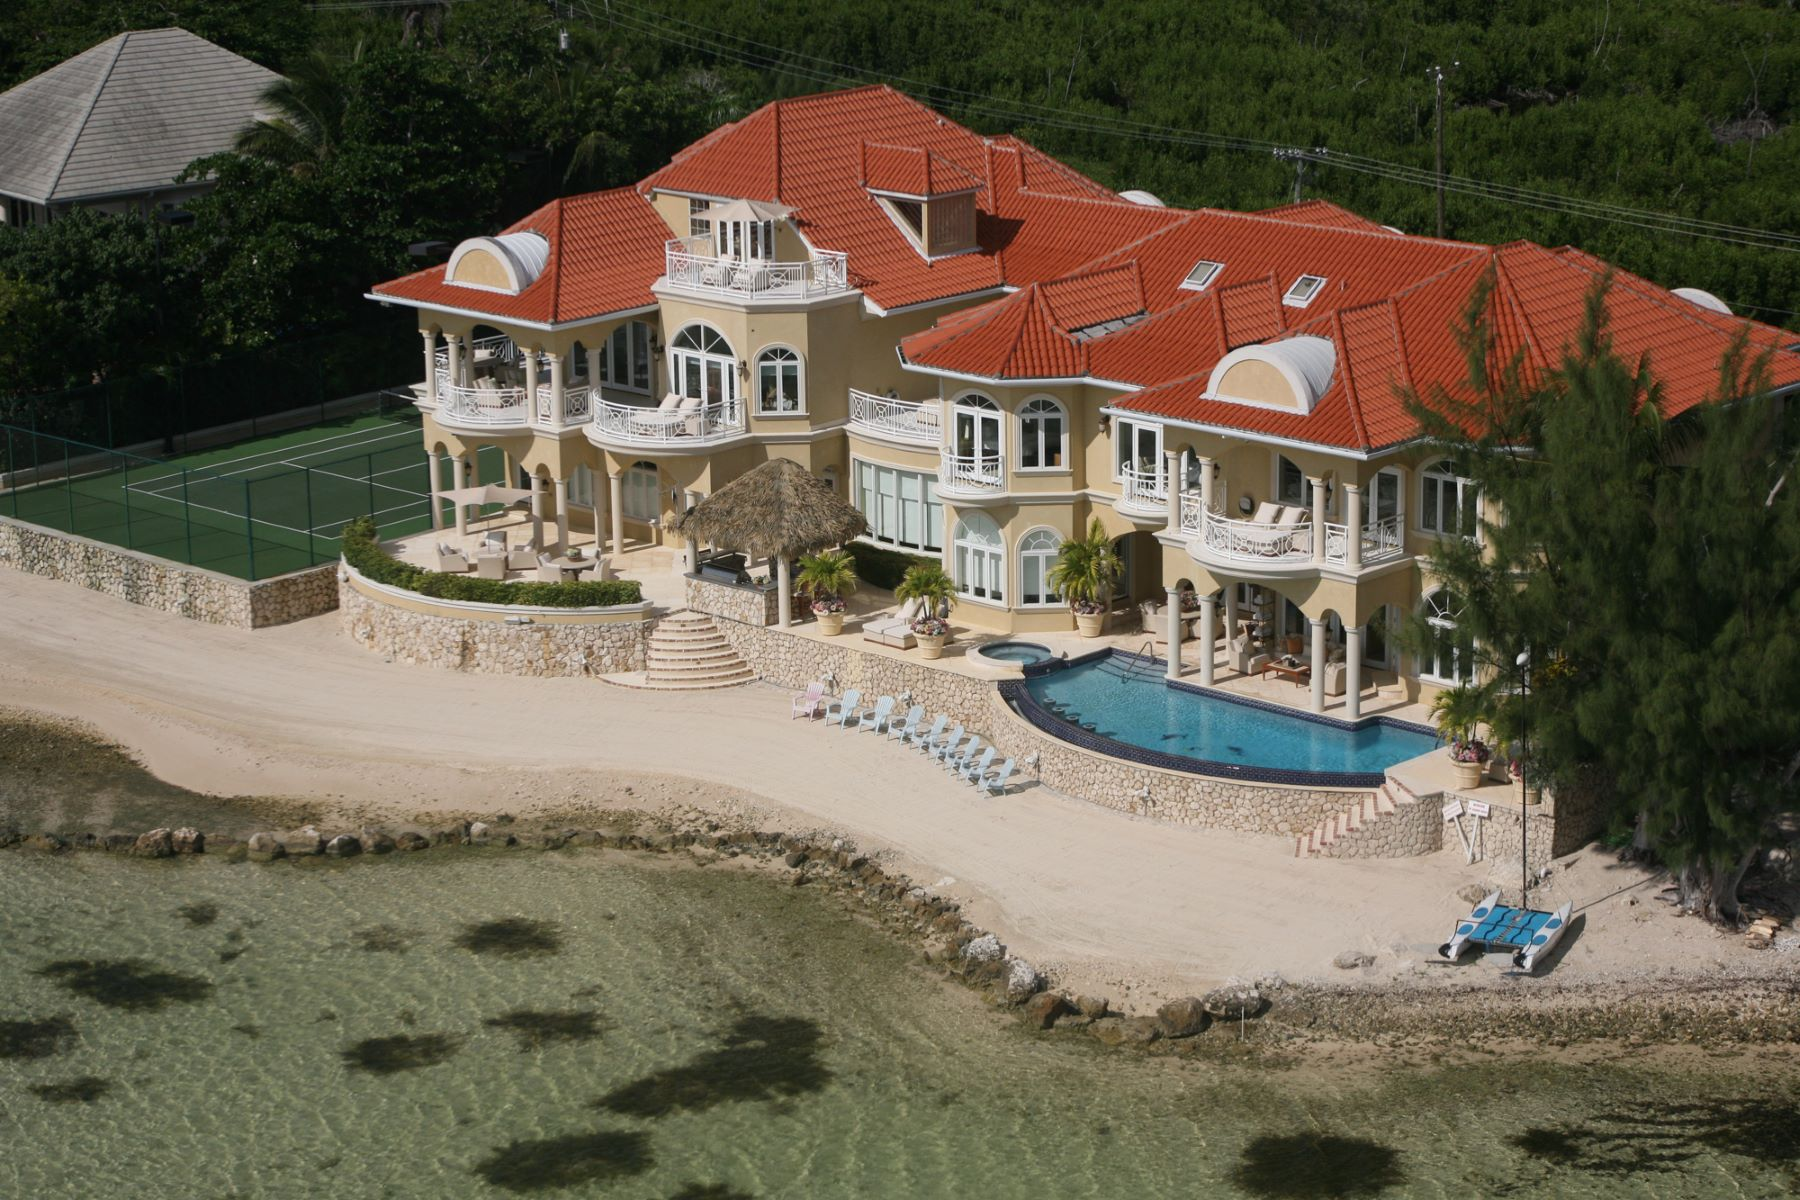 Single Family Home for Sale at Casa Coyaba, Casa Coyaba 222 Prospect Point Rd South Sound, KY1 Cayman Islands